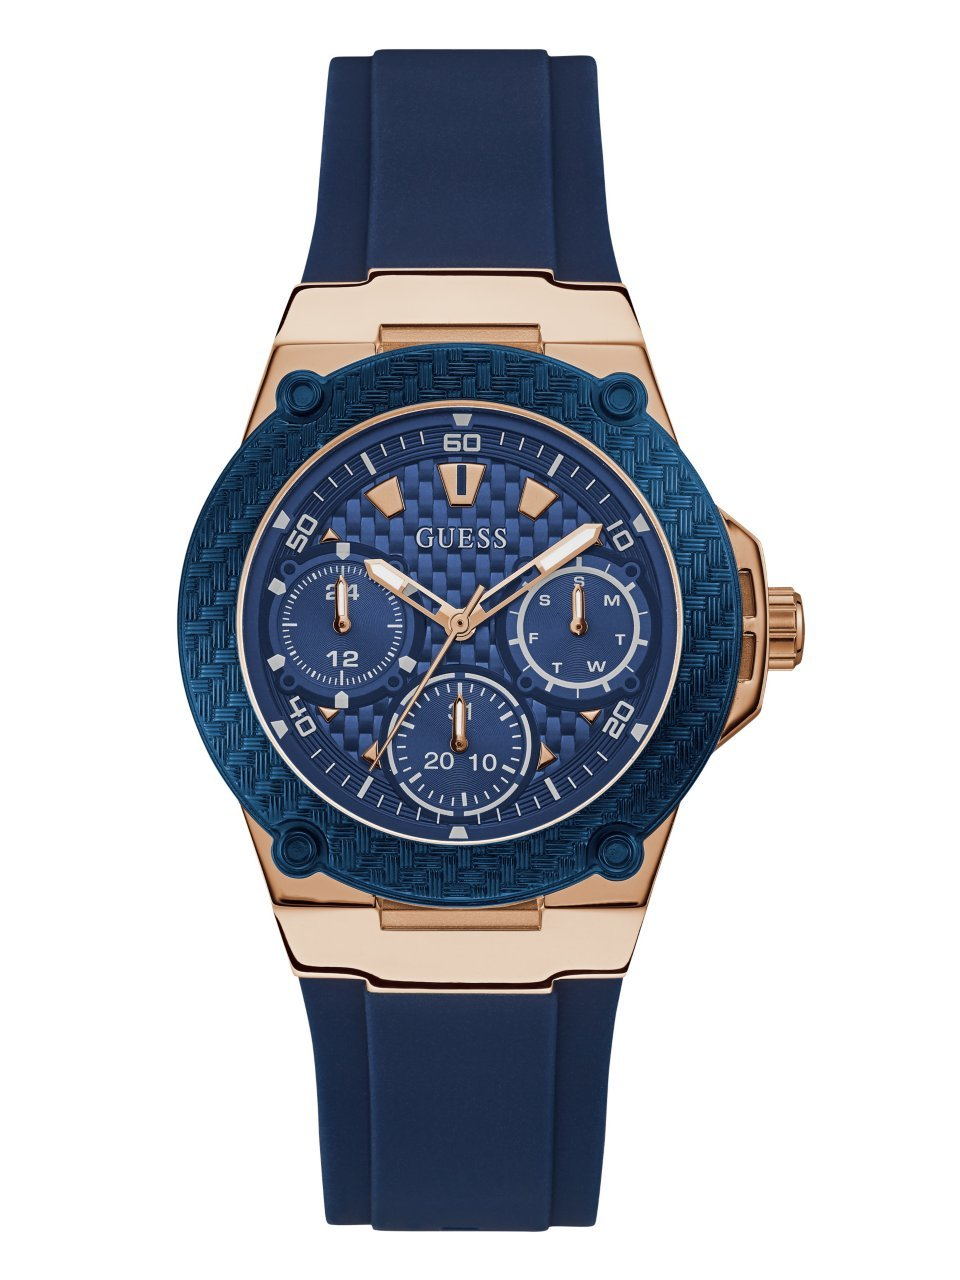 GUESS  Rose Gold-Tone + Iconic Blue Stain Resistant Silicone Watch with Day, Date + 24 Hour Military/Int'l Time. Color: Blue (Model: U1094L2)